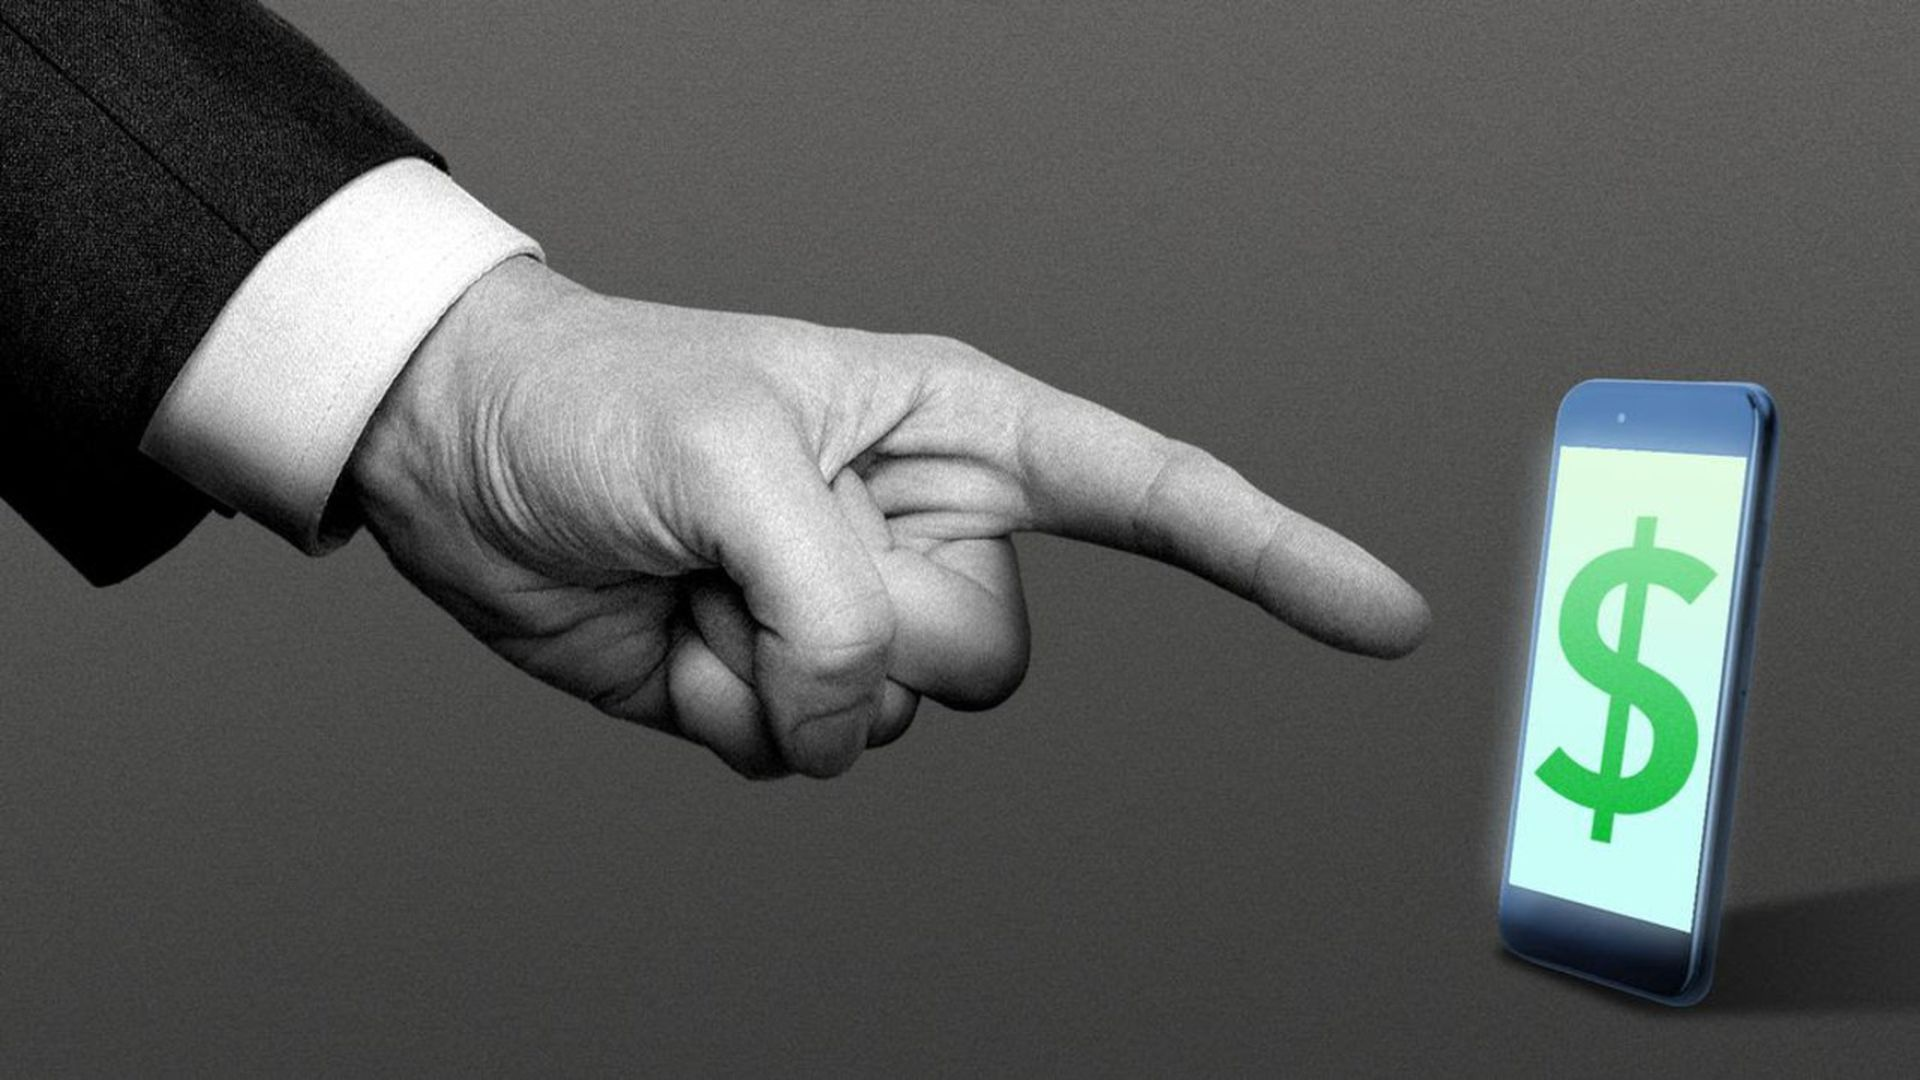 illustration of a finge rpointing at a phone